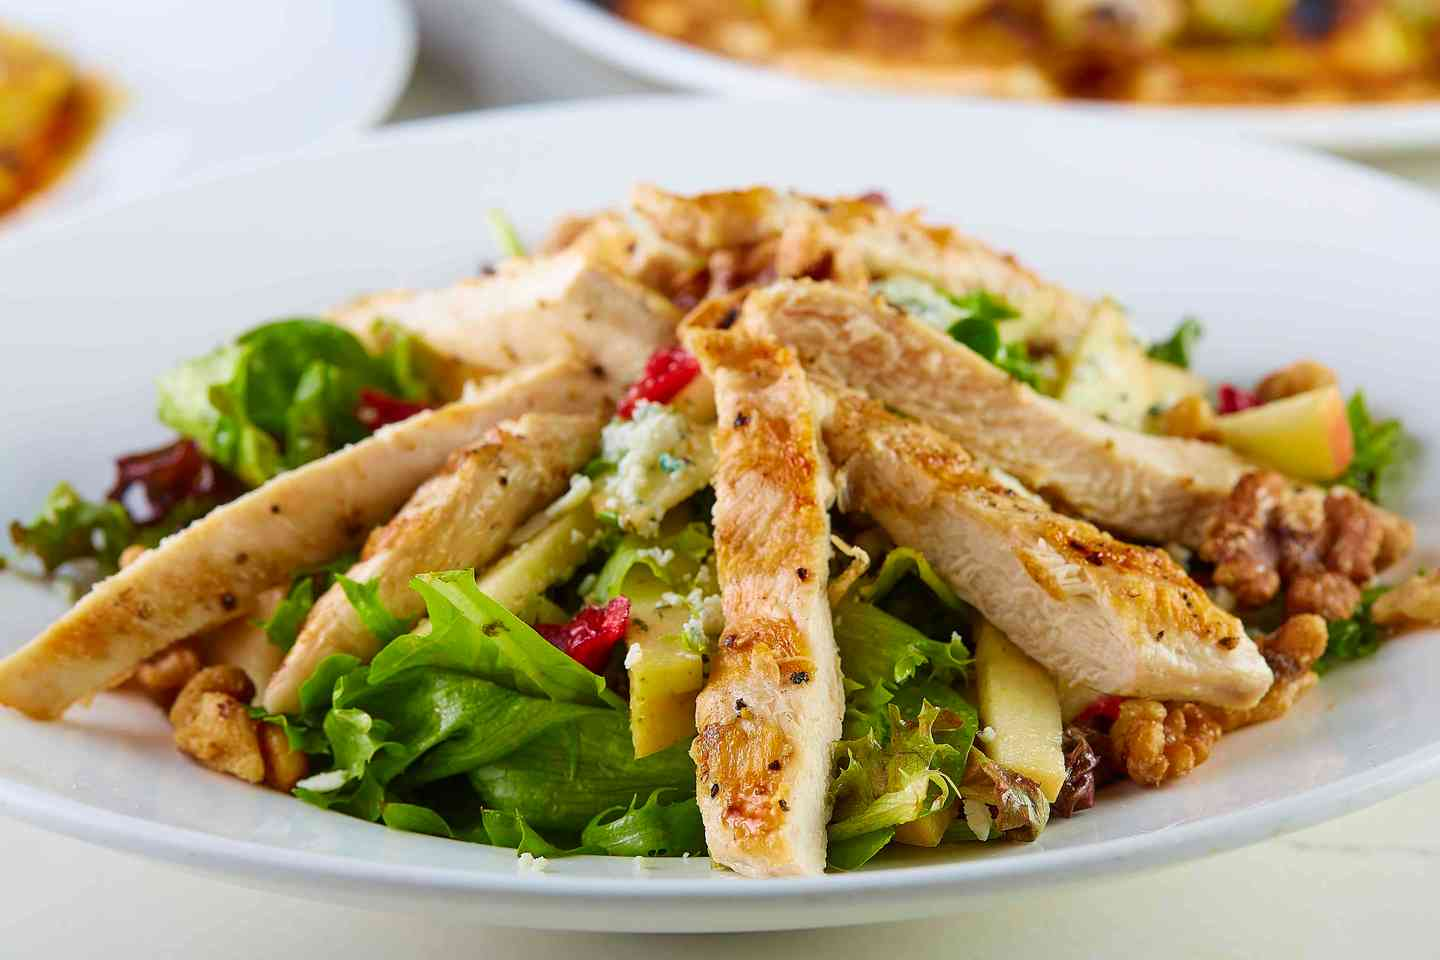 Primavera Chicken Salad